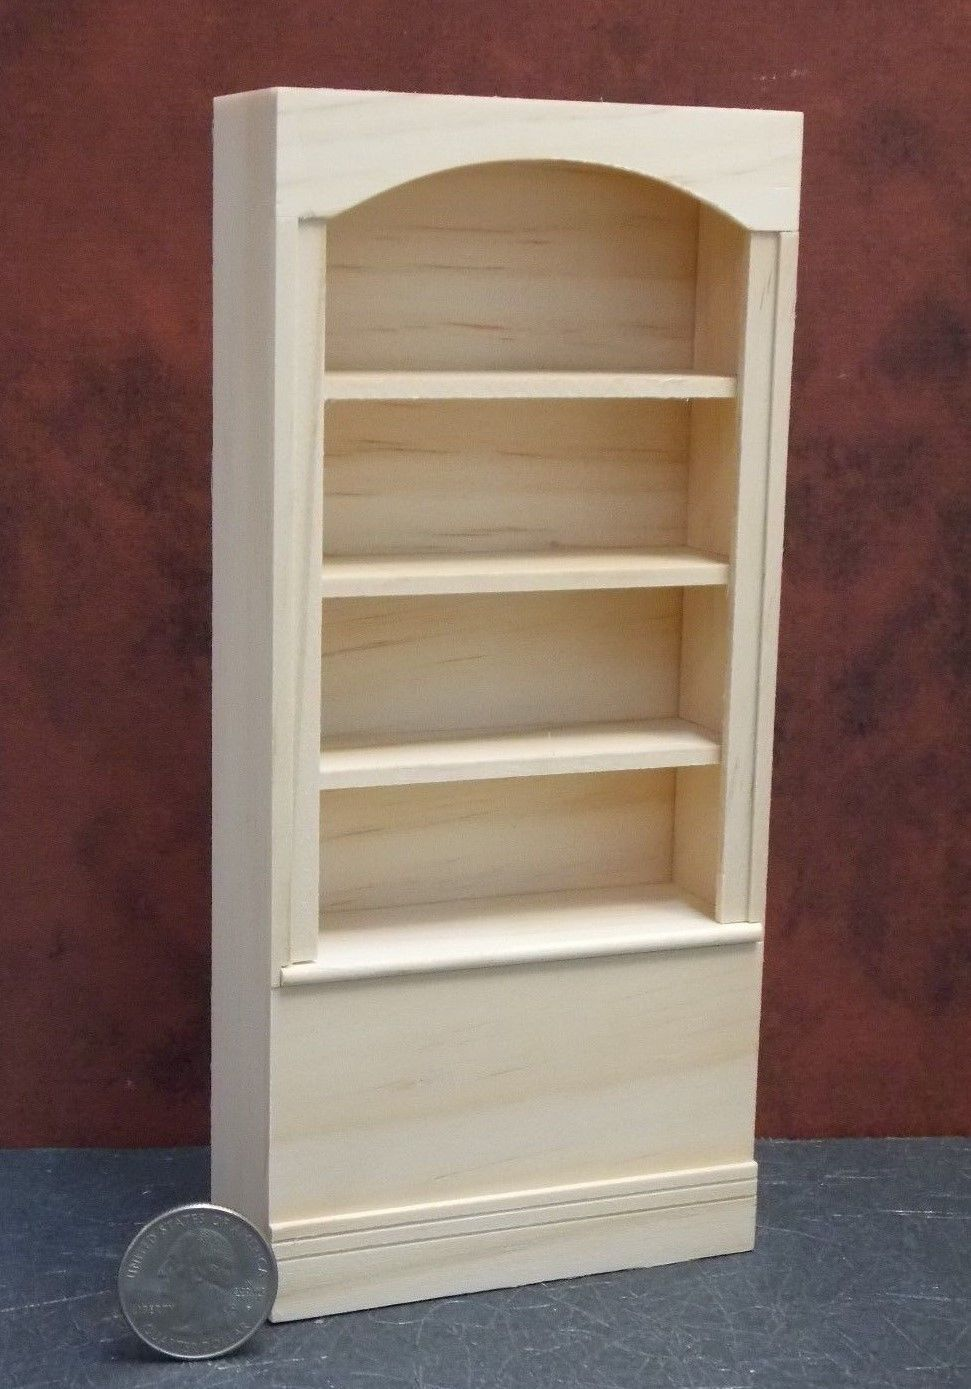 unfinished dollhouse furniture. Dollhouse Miniature Unfinished Bookcase Houseworks A 1:12 One Inch Scale D74 Furniture E